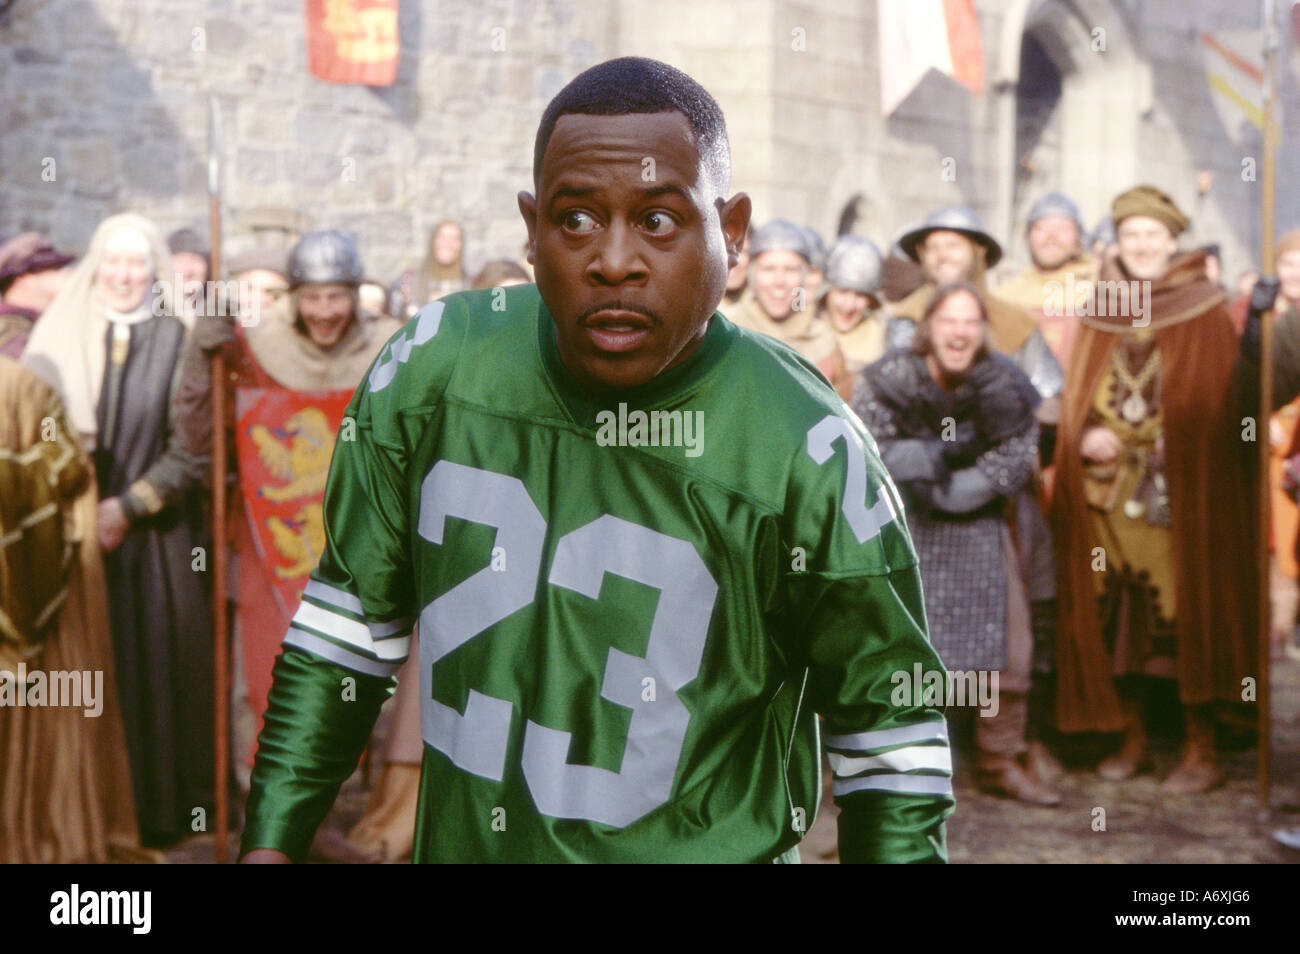 BLACK KNIGHT 2001 Twentieth Century Fox Film mit Martin Lawrence als Jamal Stockbild